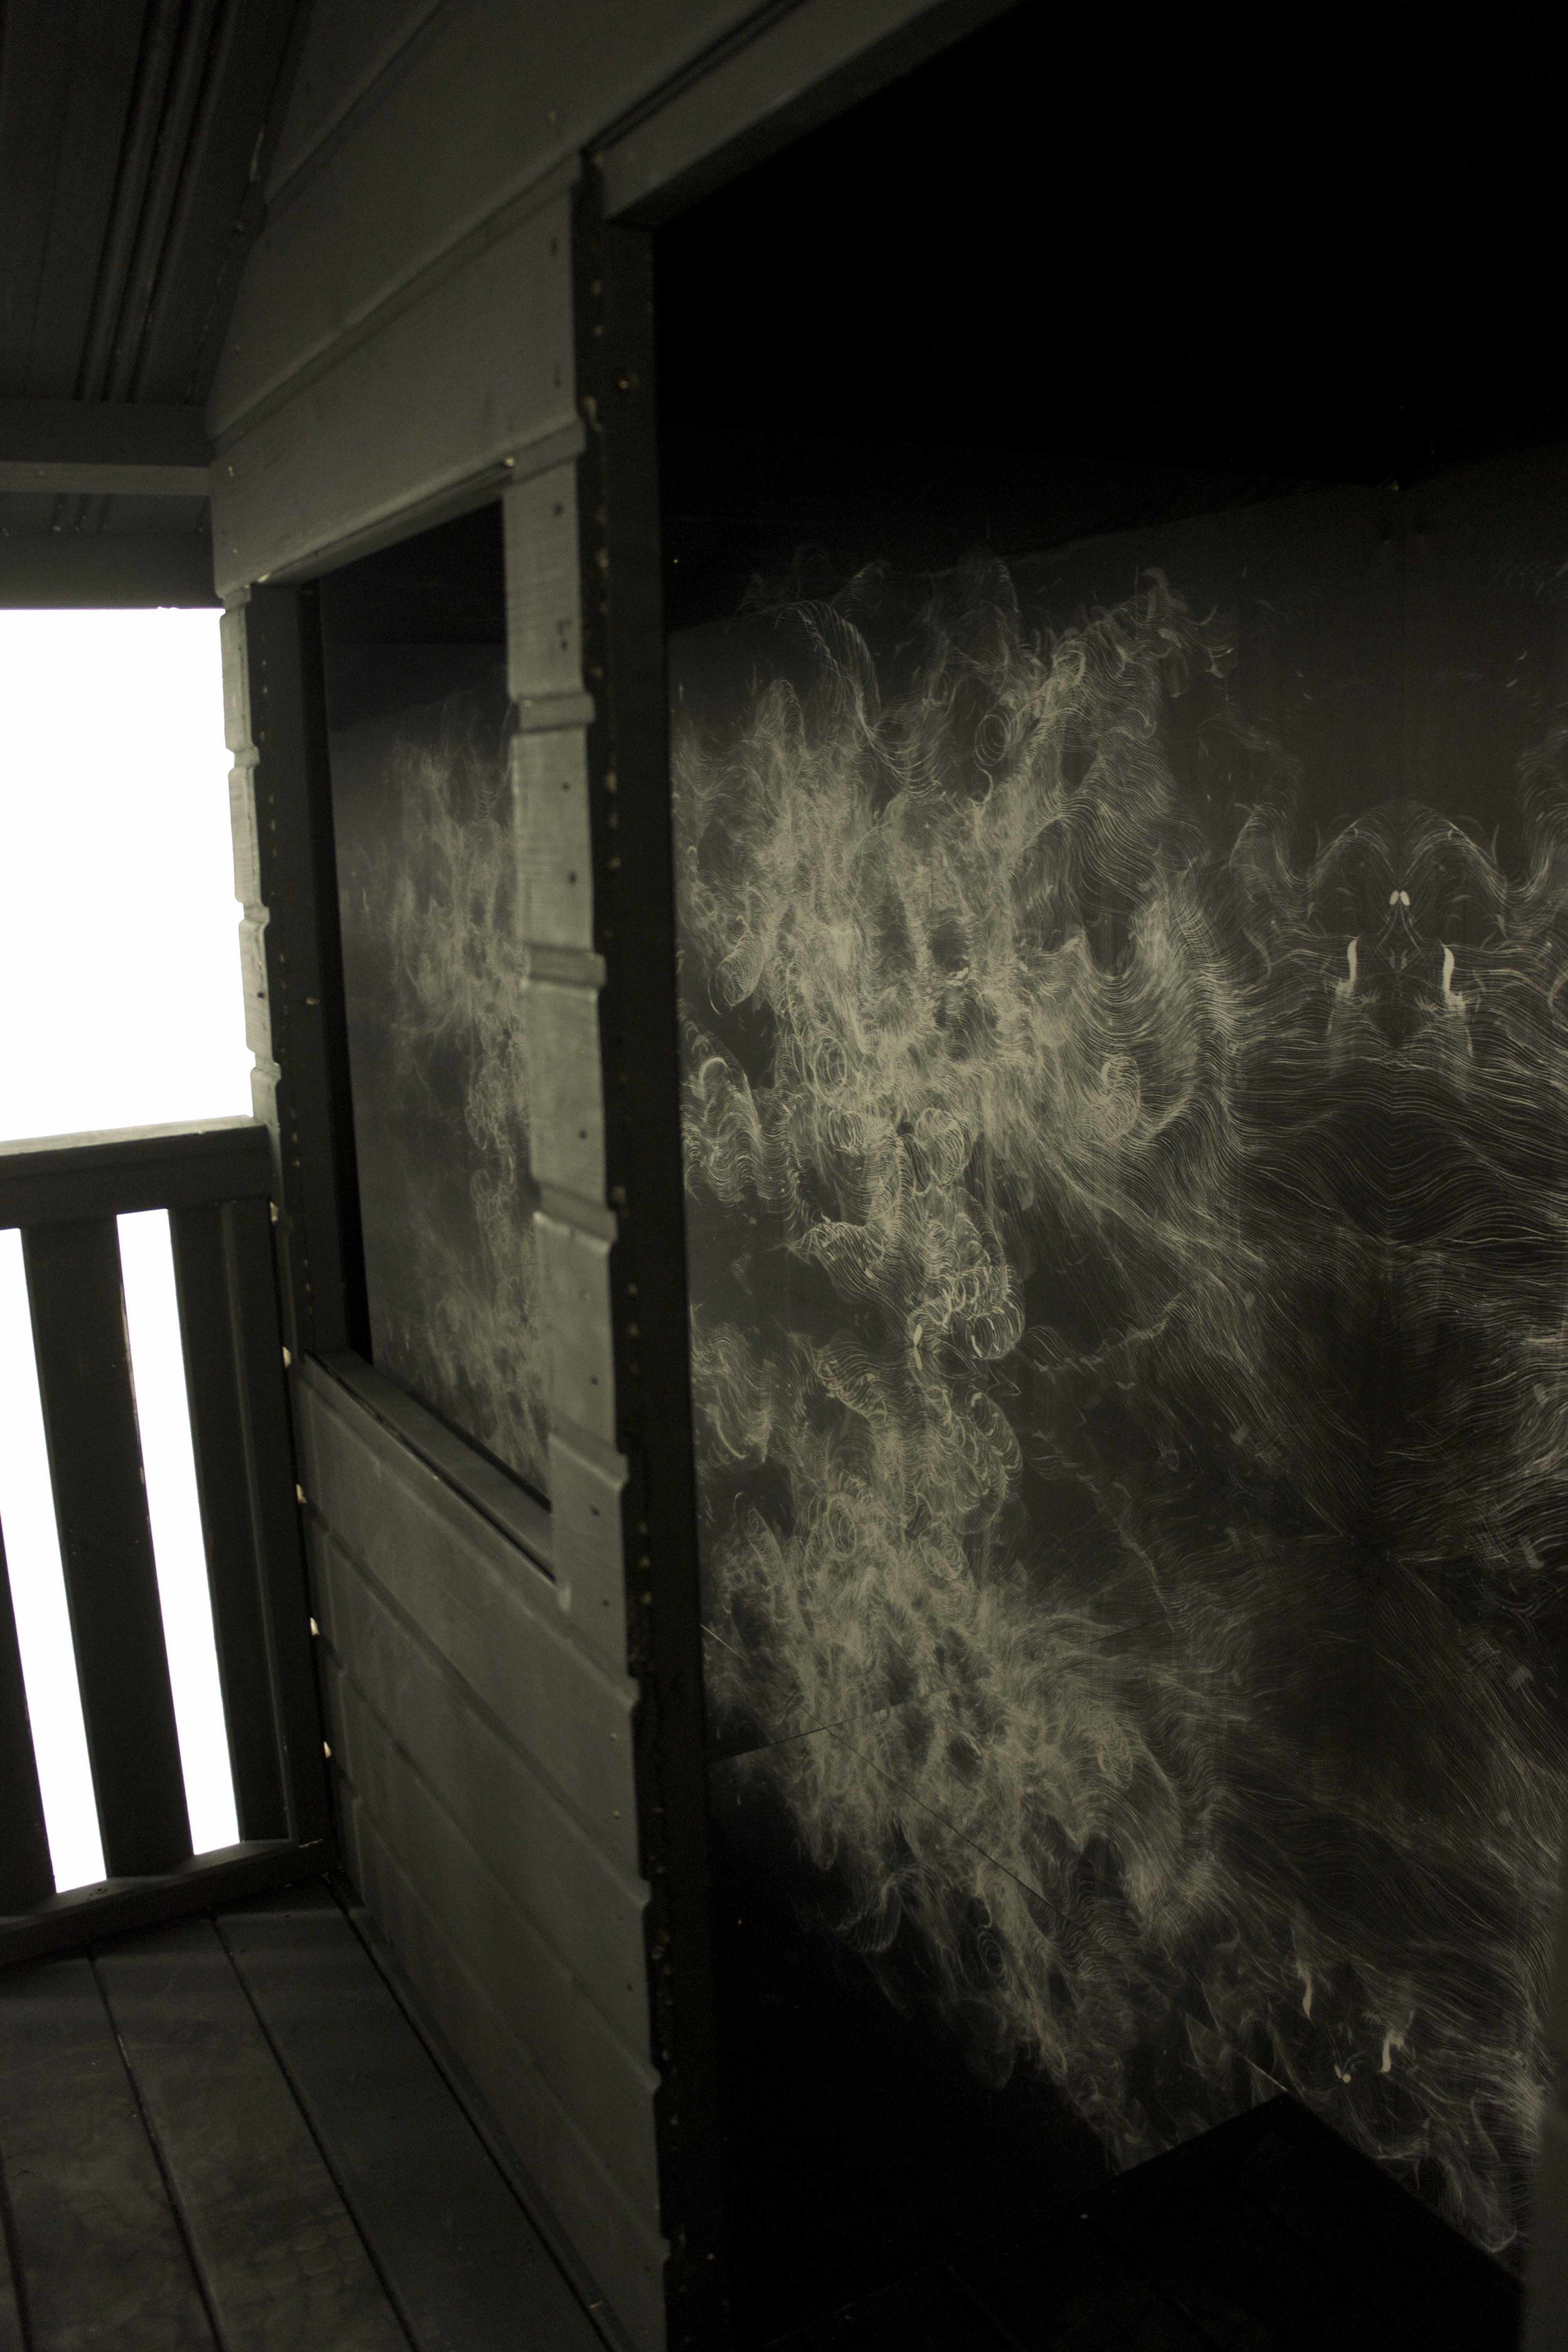 Interior shot through door of 'Infinity shed', white ink mural and mirror